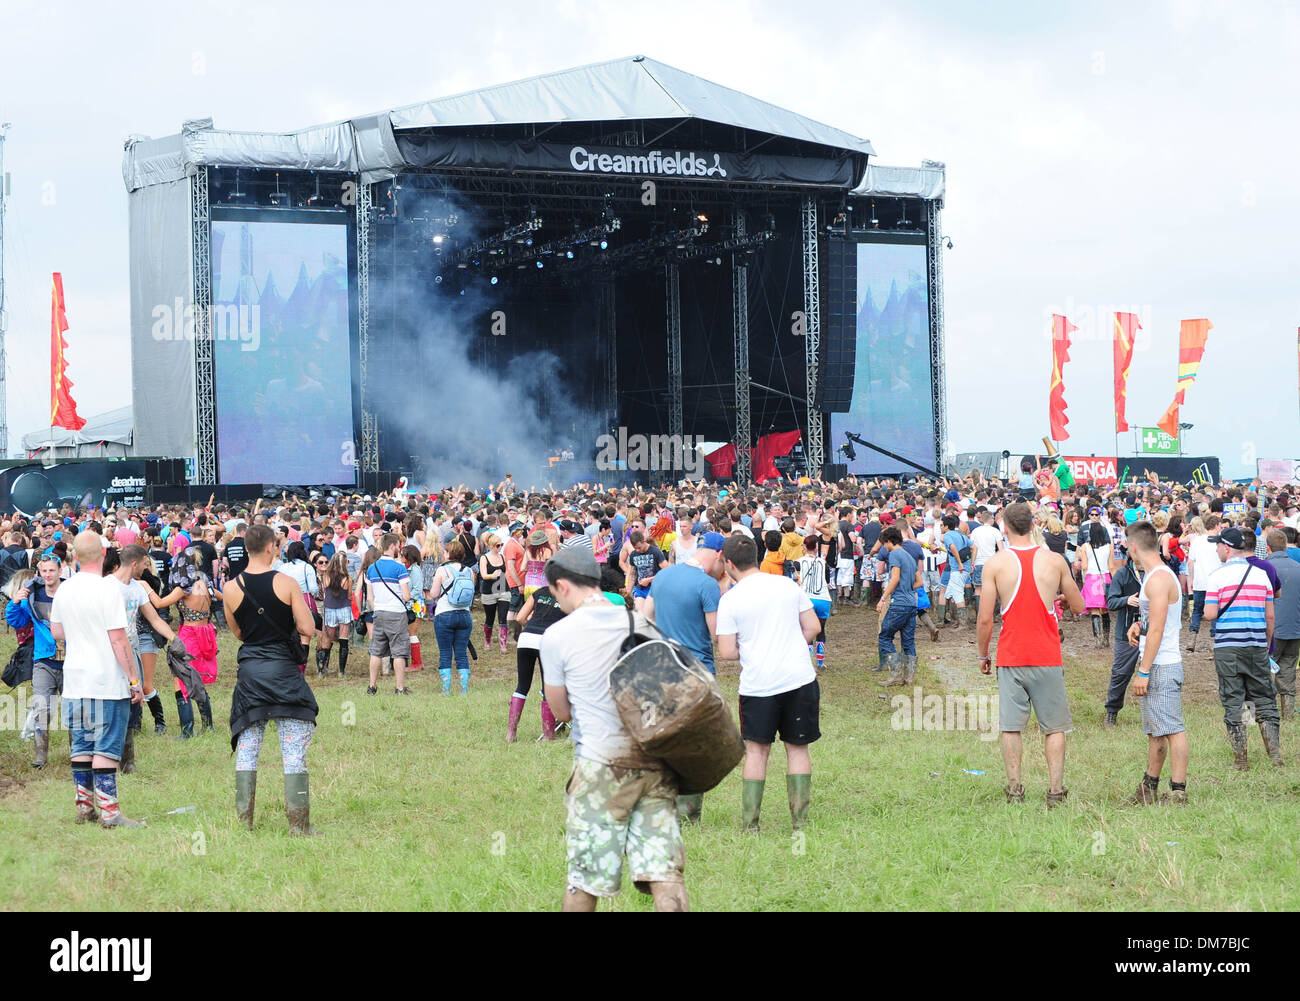 Creamfields organisers have reportedly stopped entry to festival site due to heavy rainfall over last day A statement has been - Stock Image